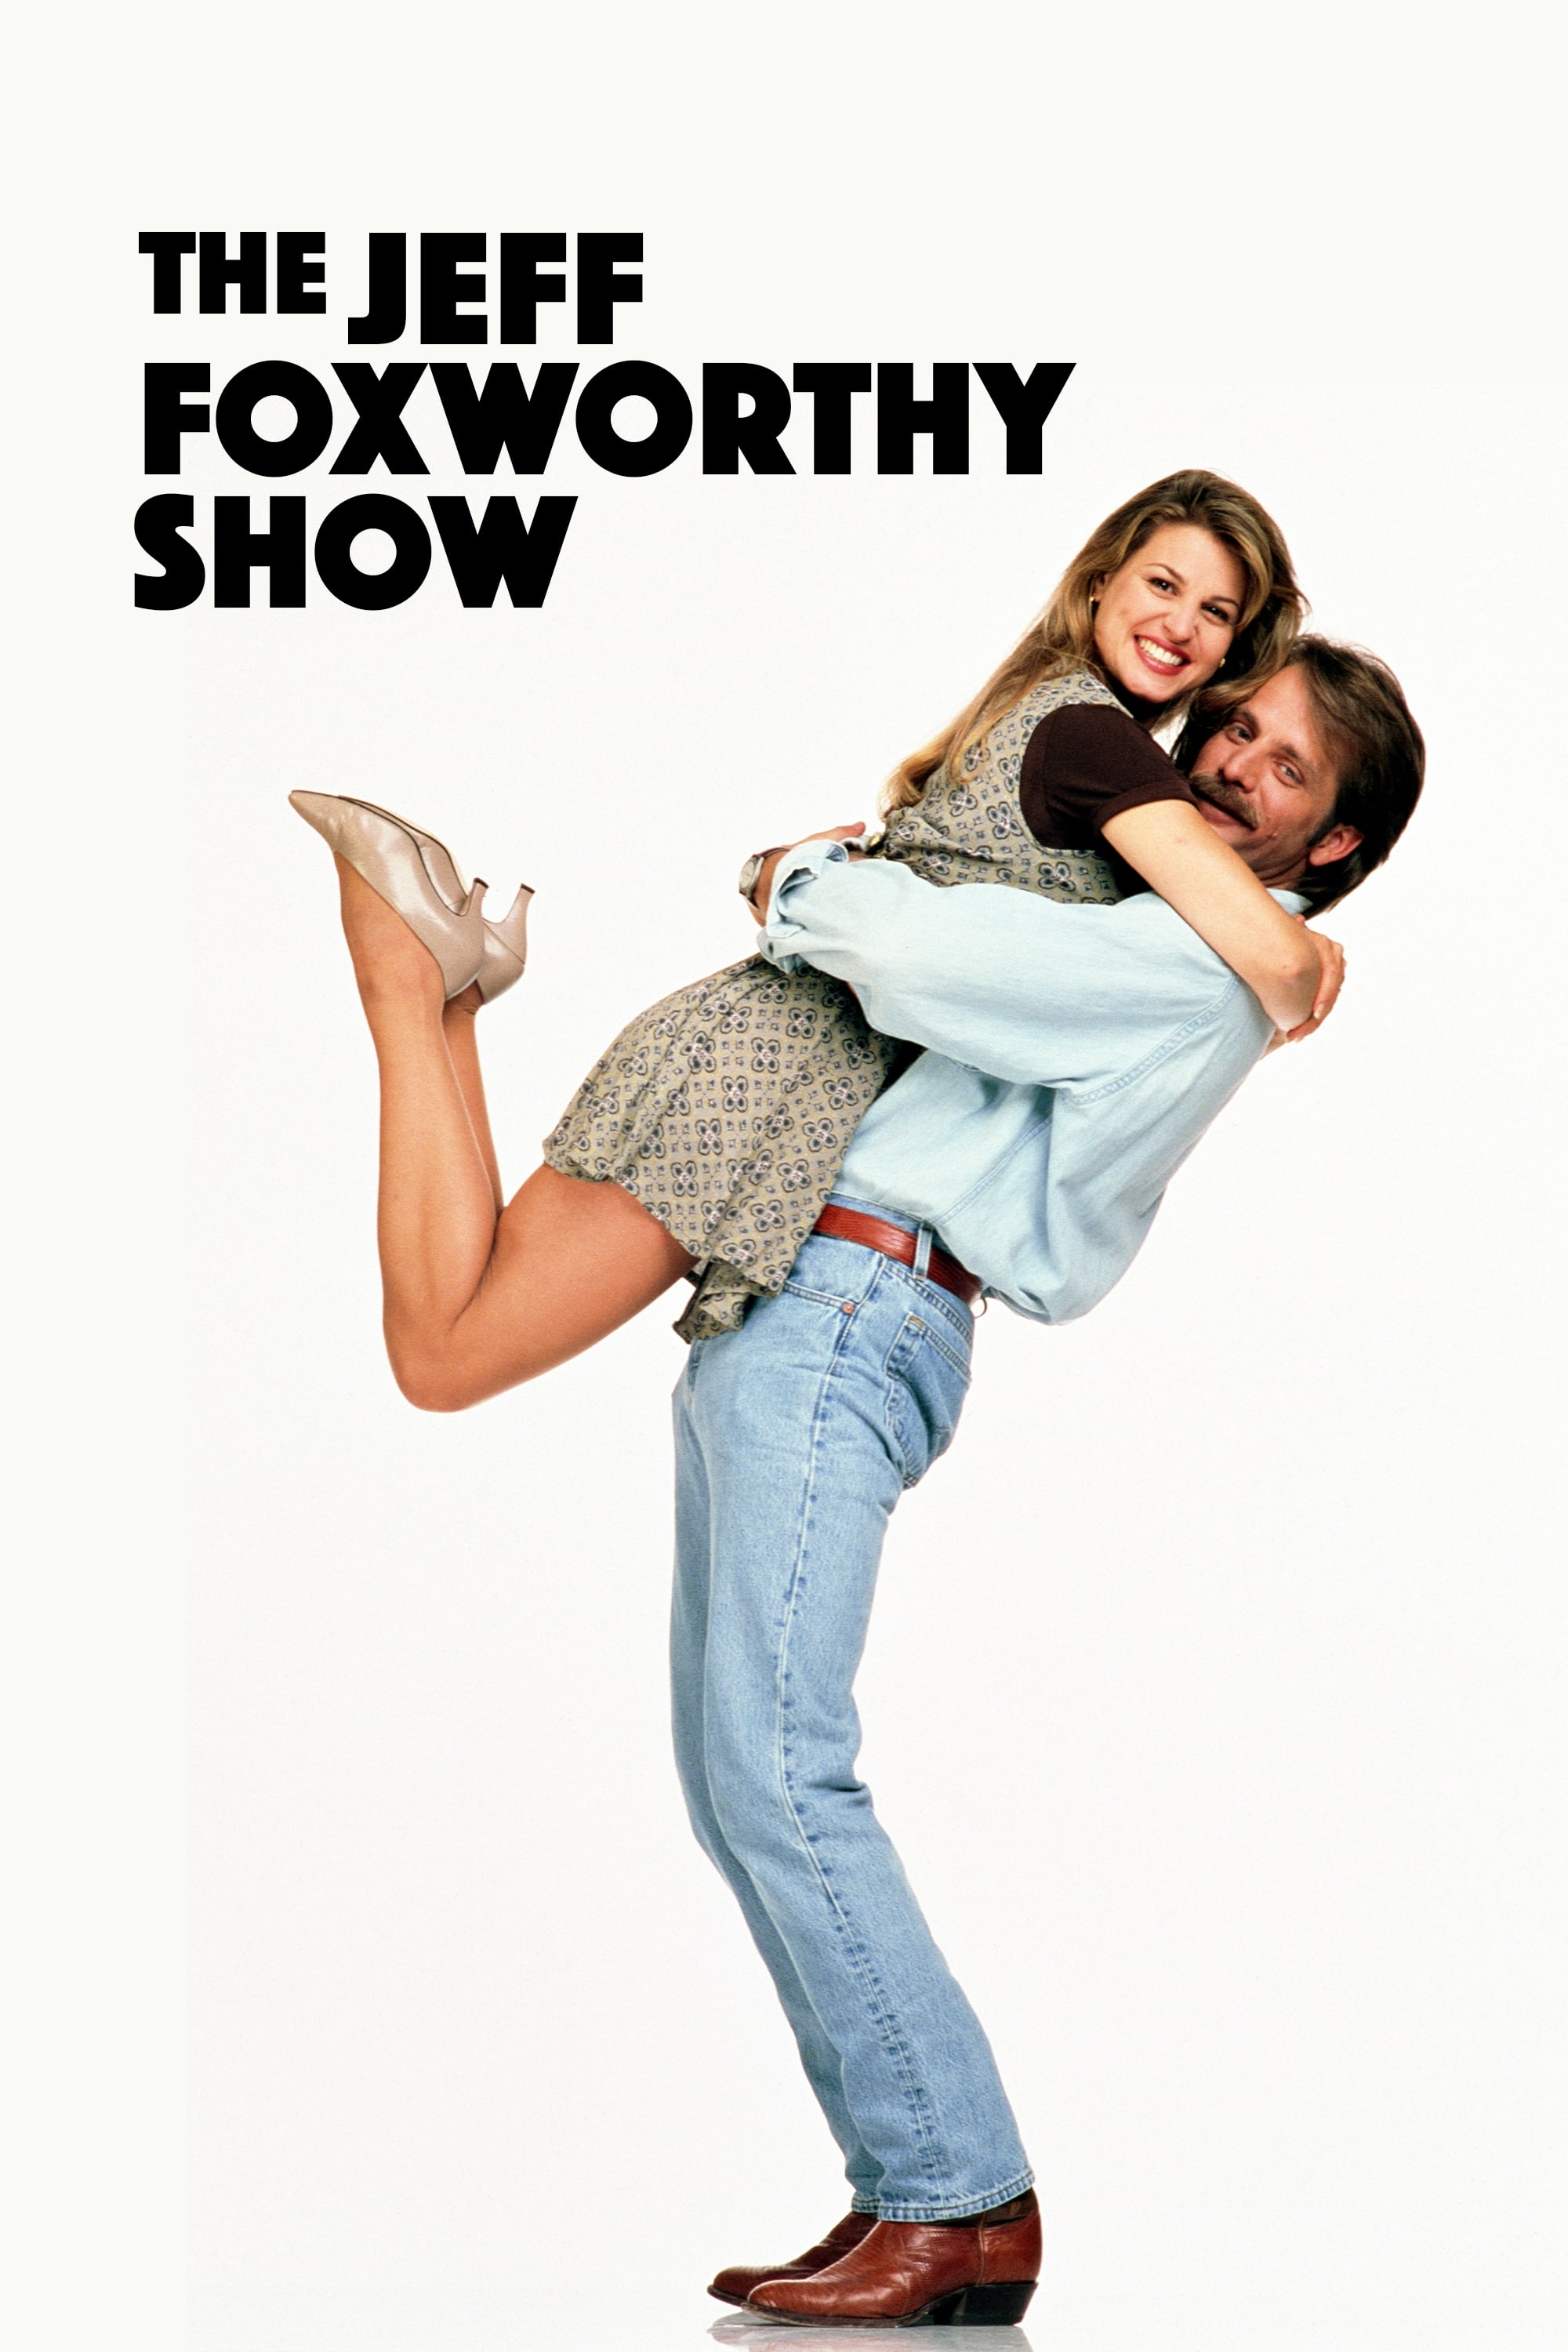 The Jeff Foxworthy Show on FREECABLE TV